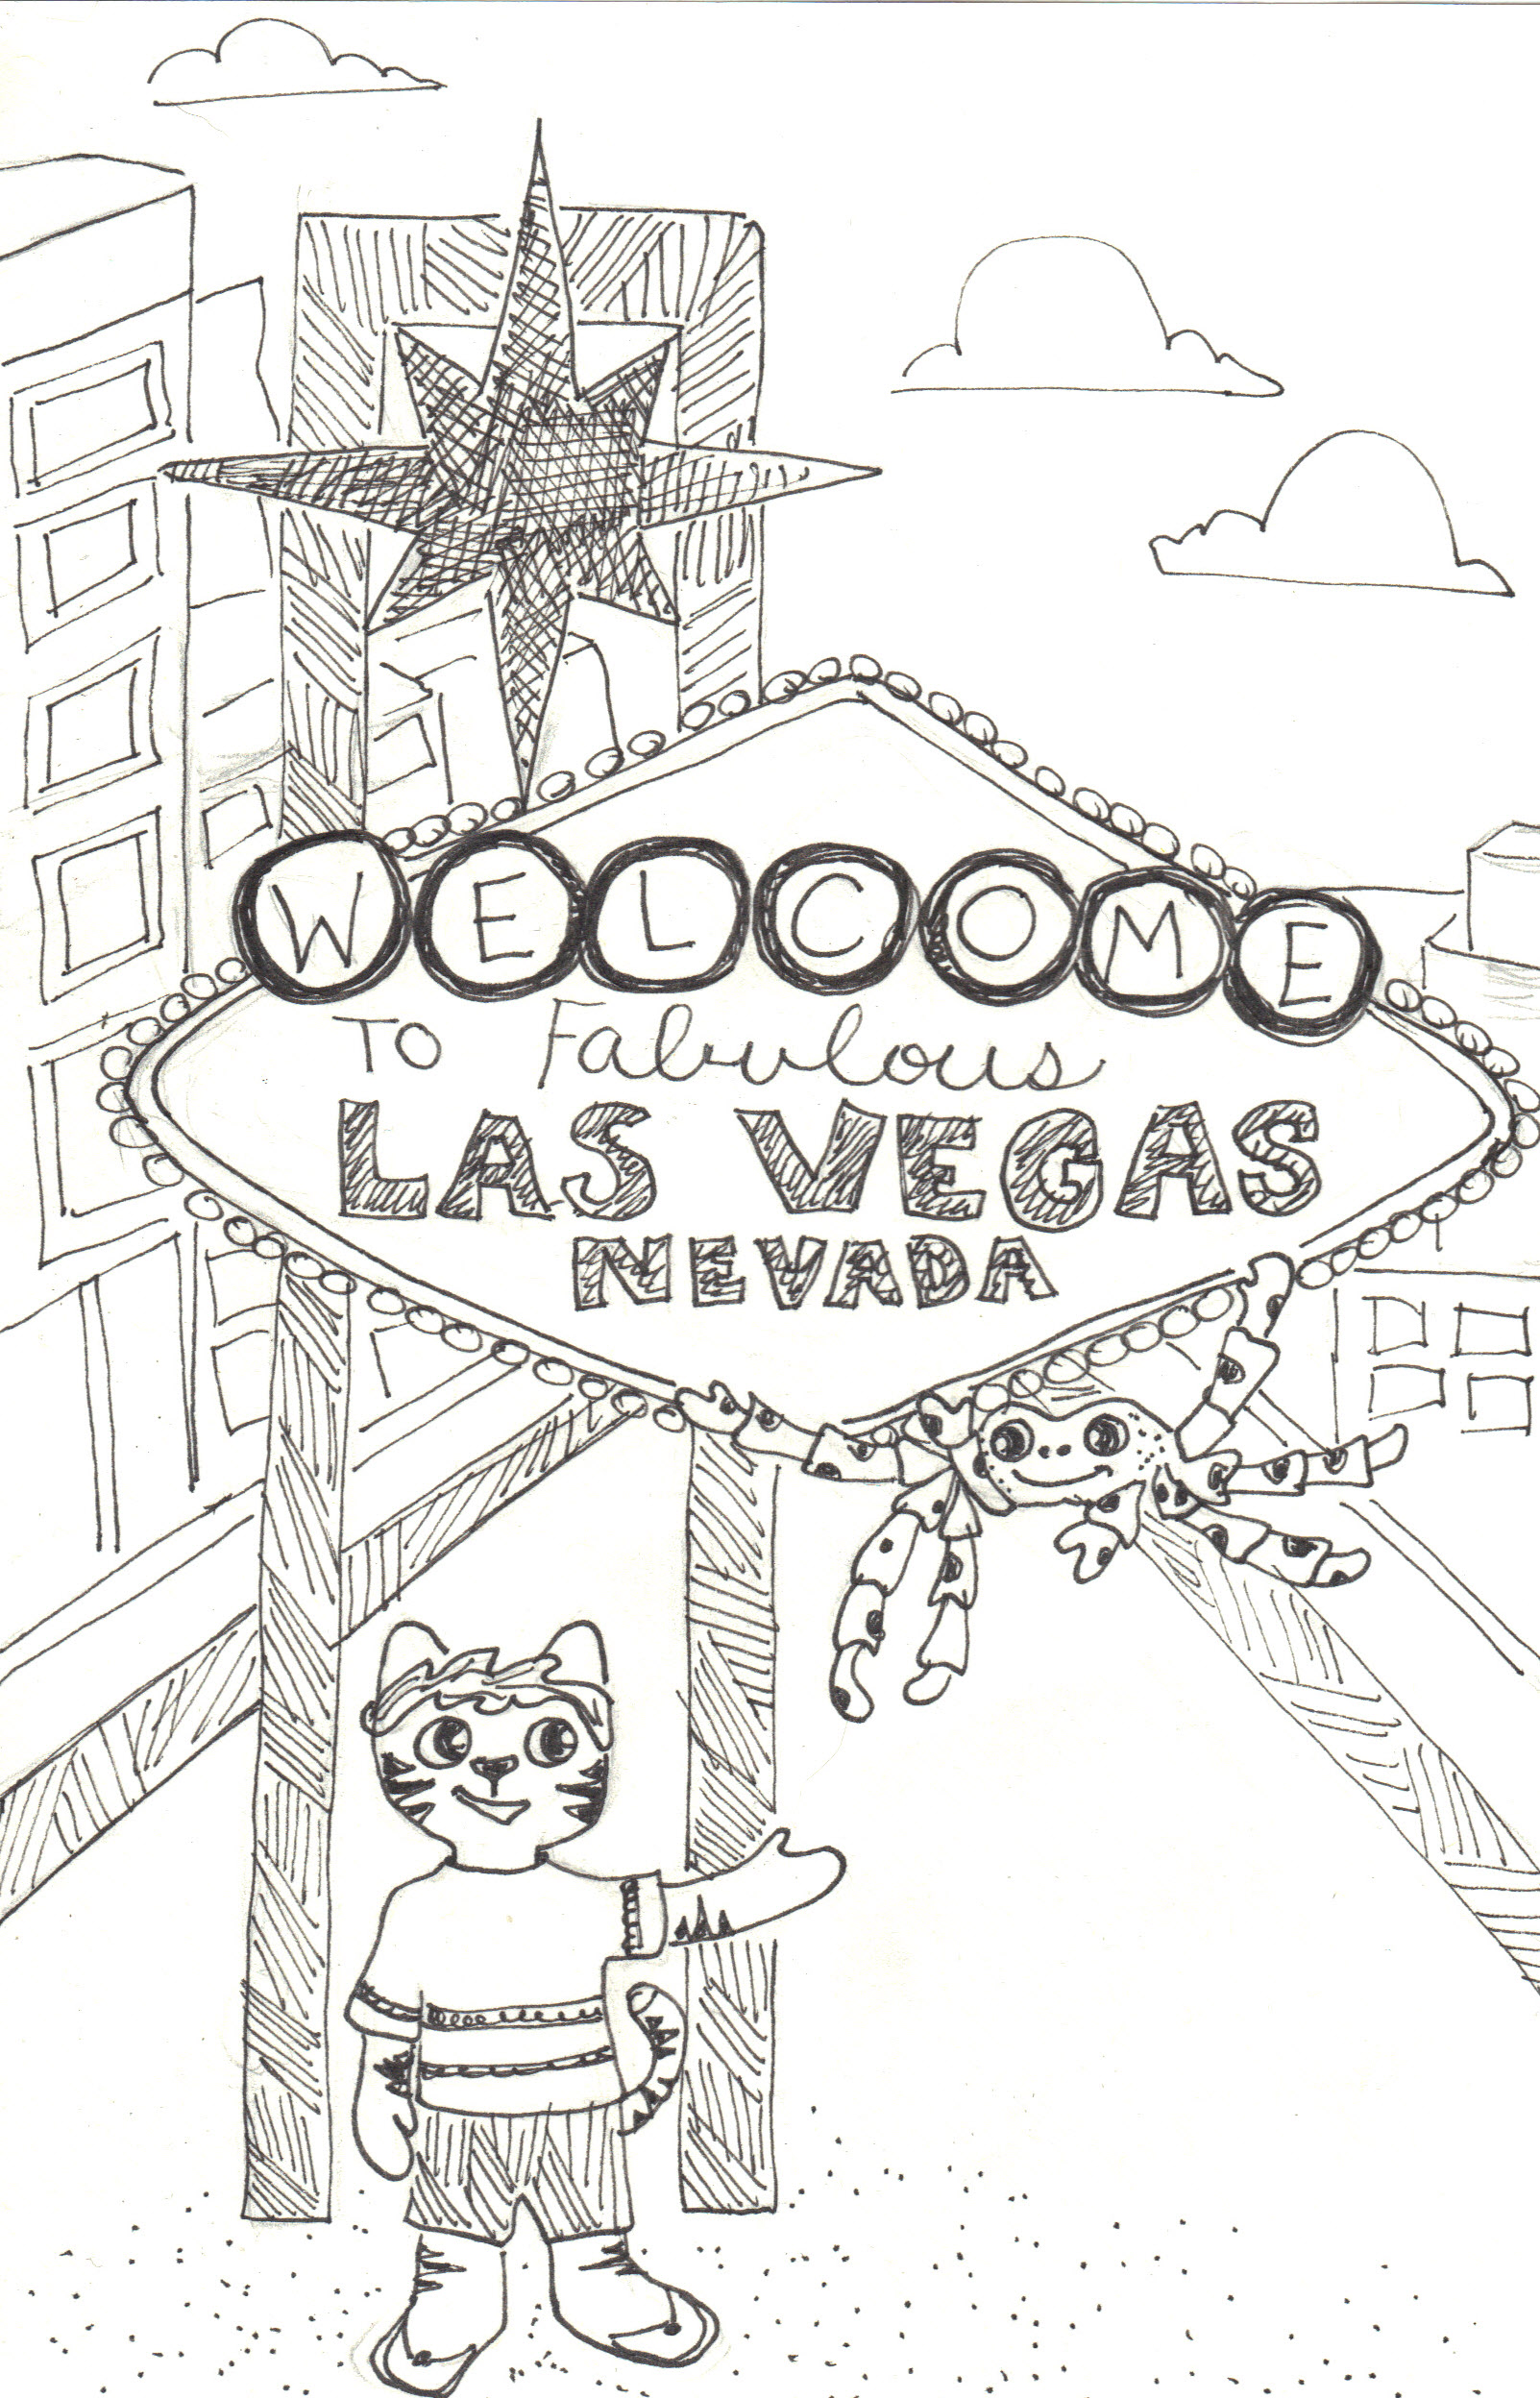 Las Vegas Drawing at GetDrawings.com | Free for personal use Las ...